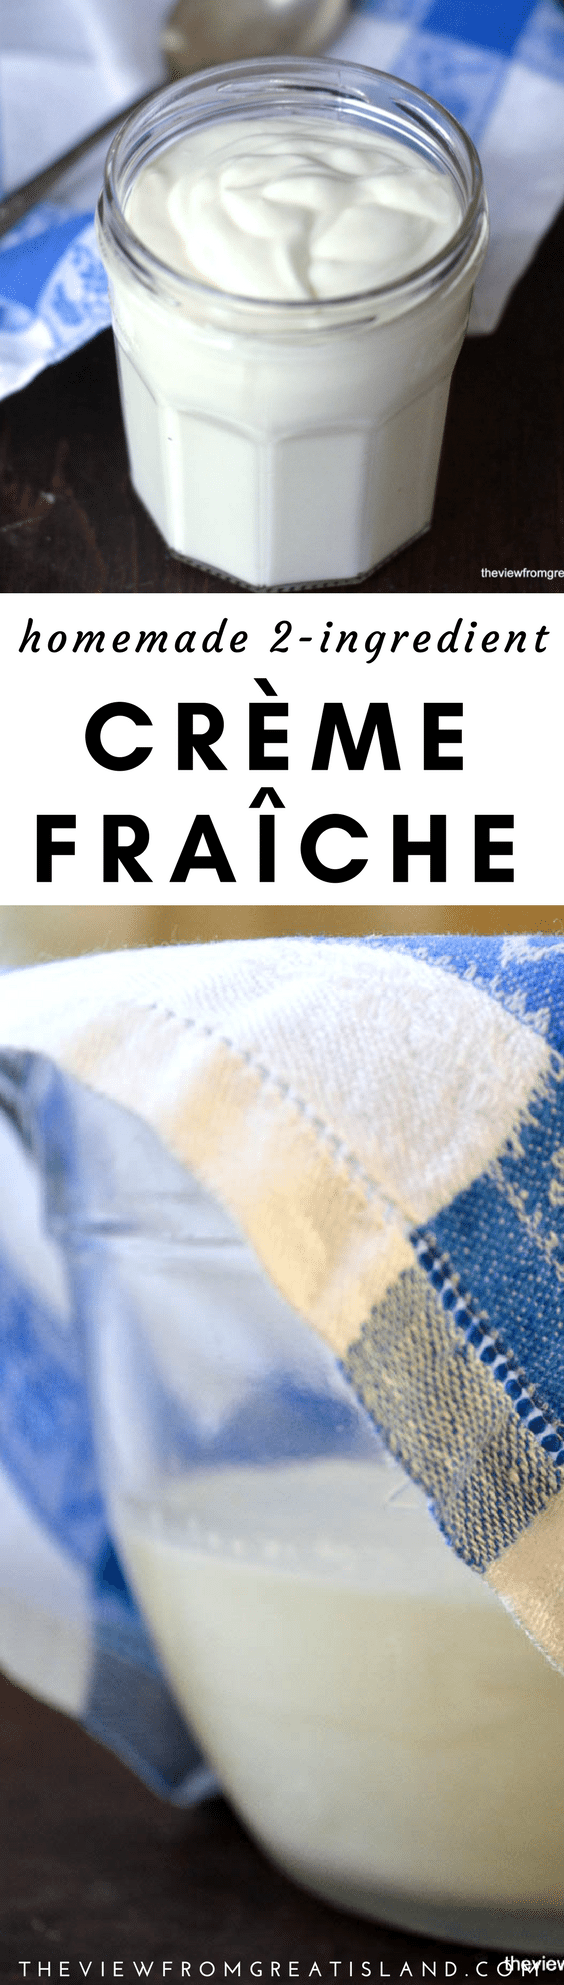 Homemade Crème Fraîche ~ with just 2 ingredients you can make your own thick and creamy crème fraîche ~ no more last minute trips to the supermarket to buy one of those overpriced little tubs! #diy #cremefraiche #homemade #cremefraicherecipe #sourcream